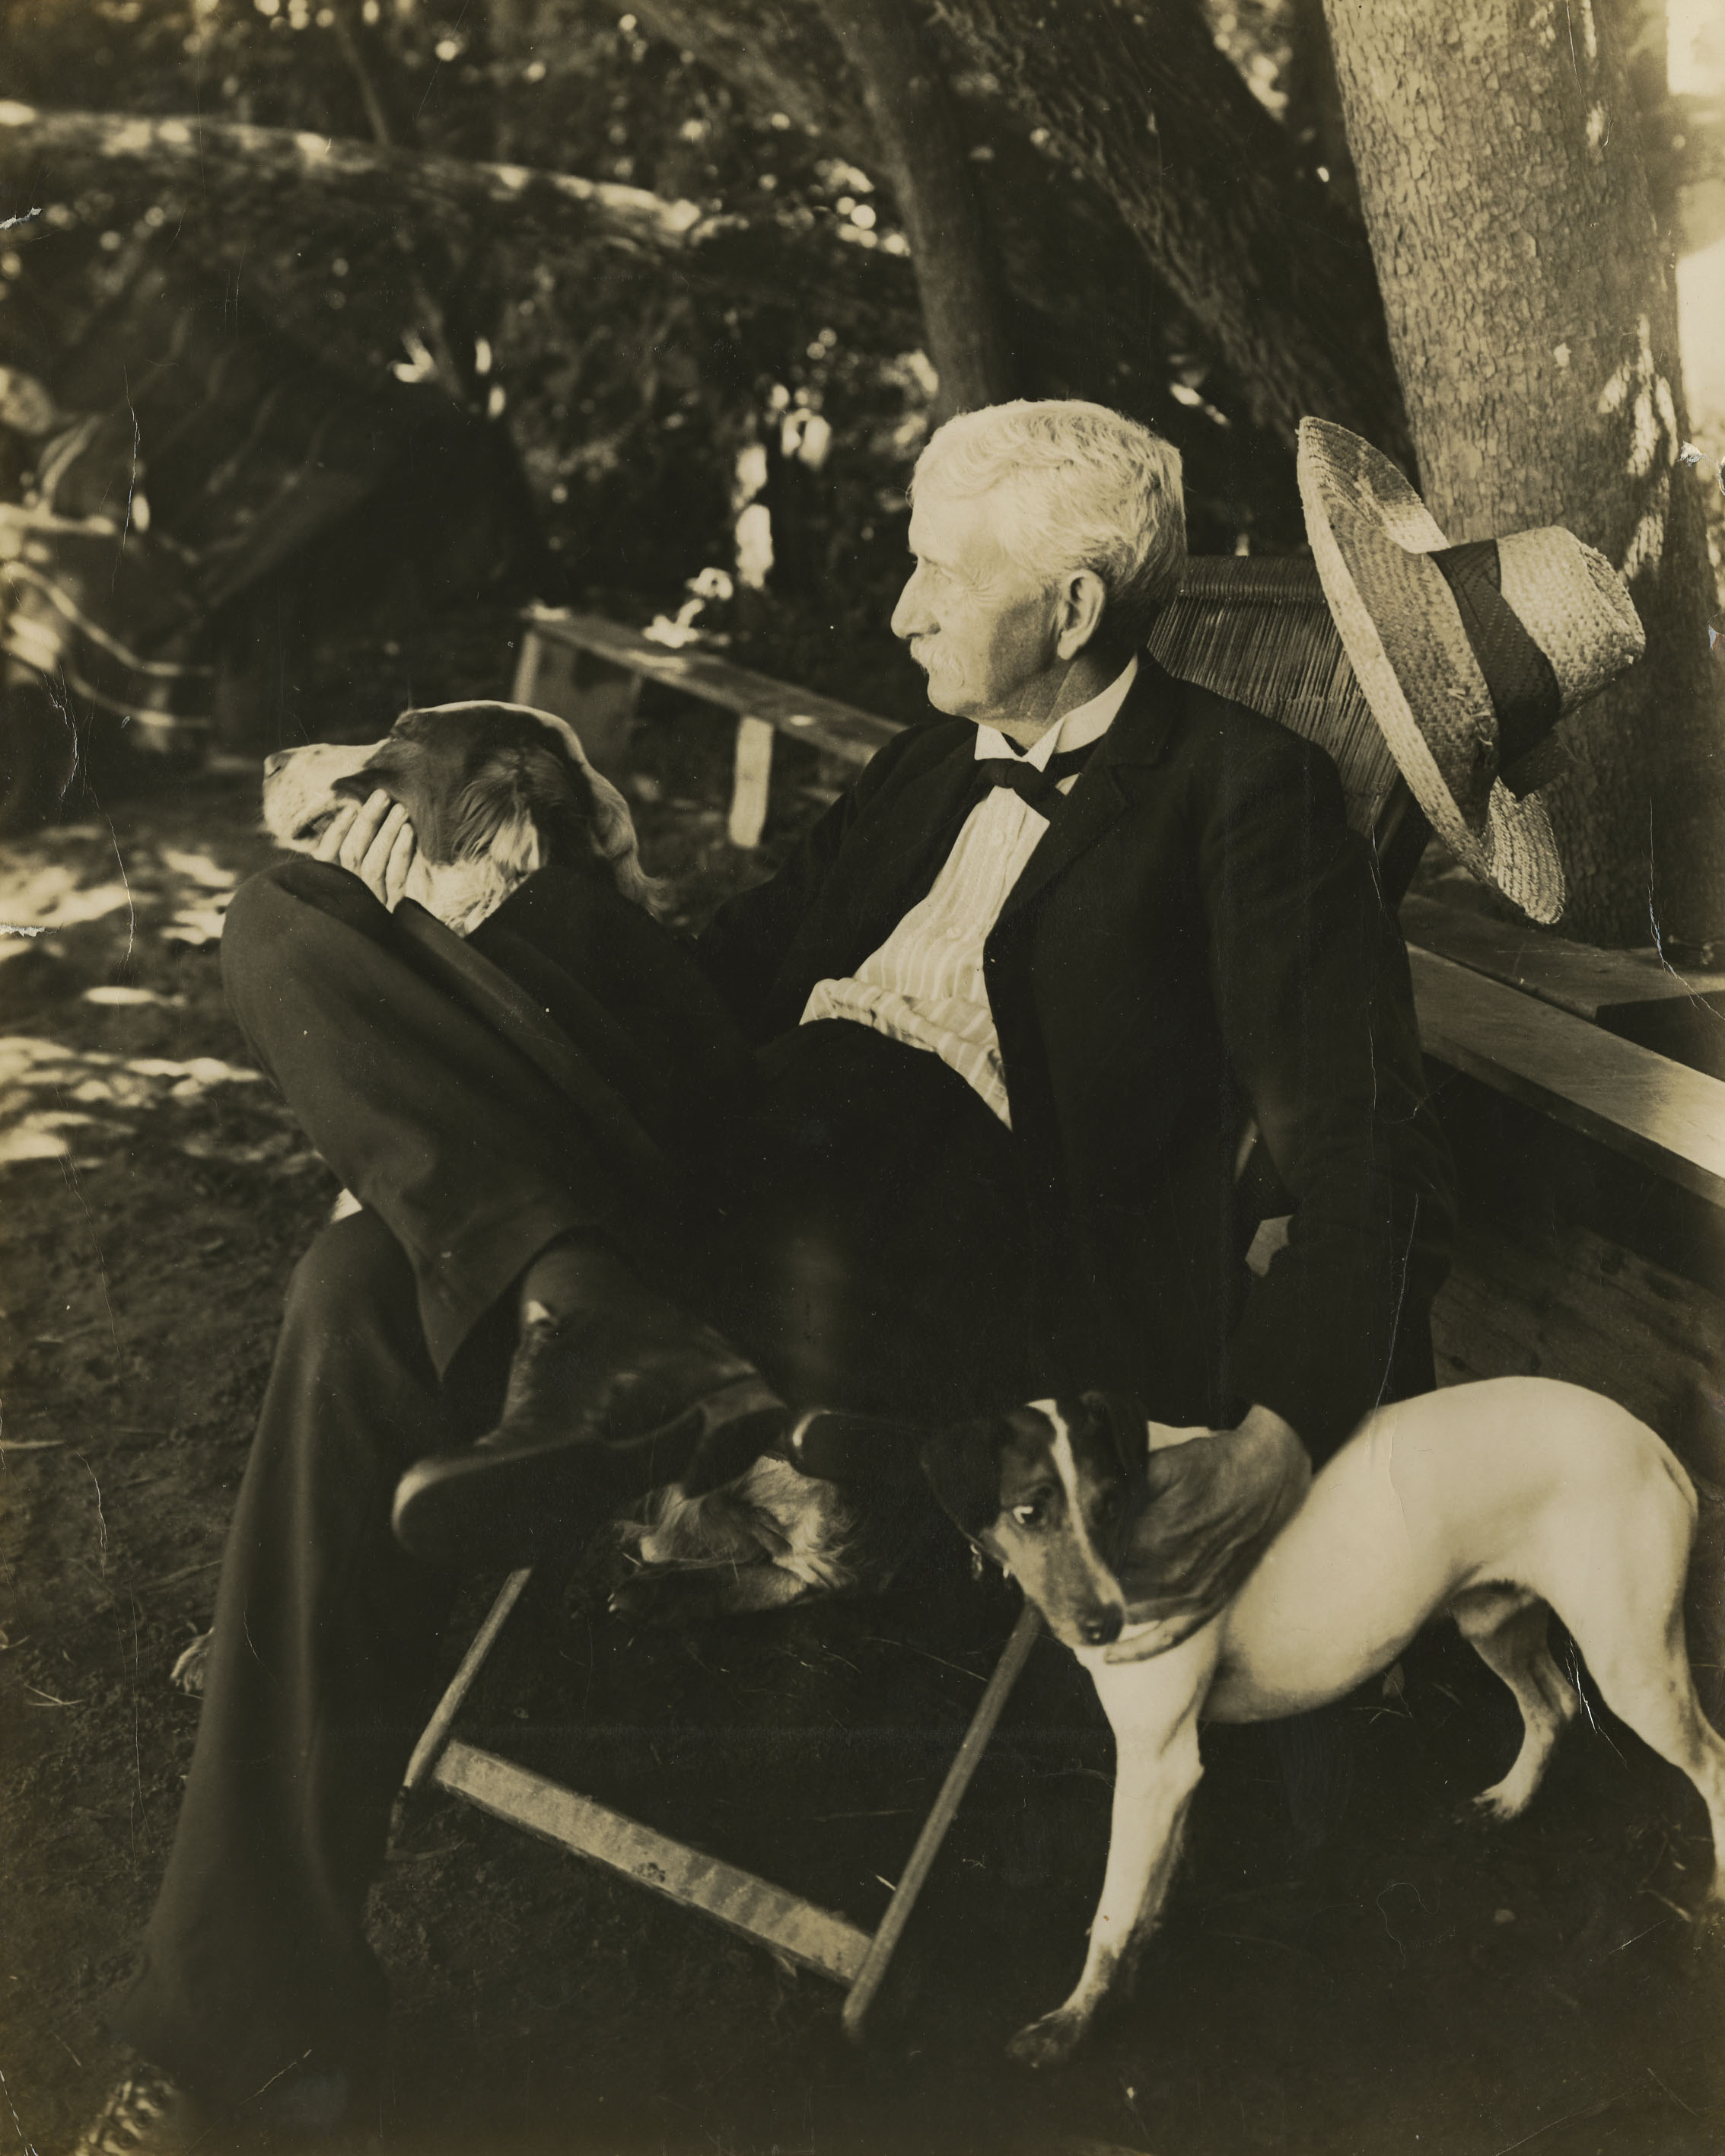 image of Presidnet McBryde outdoors with two dogs